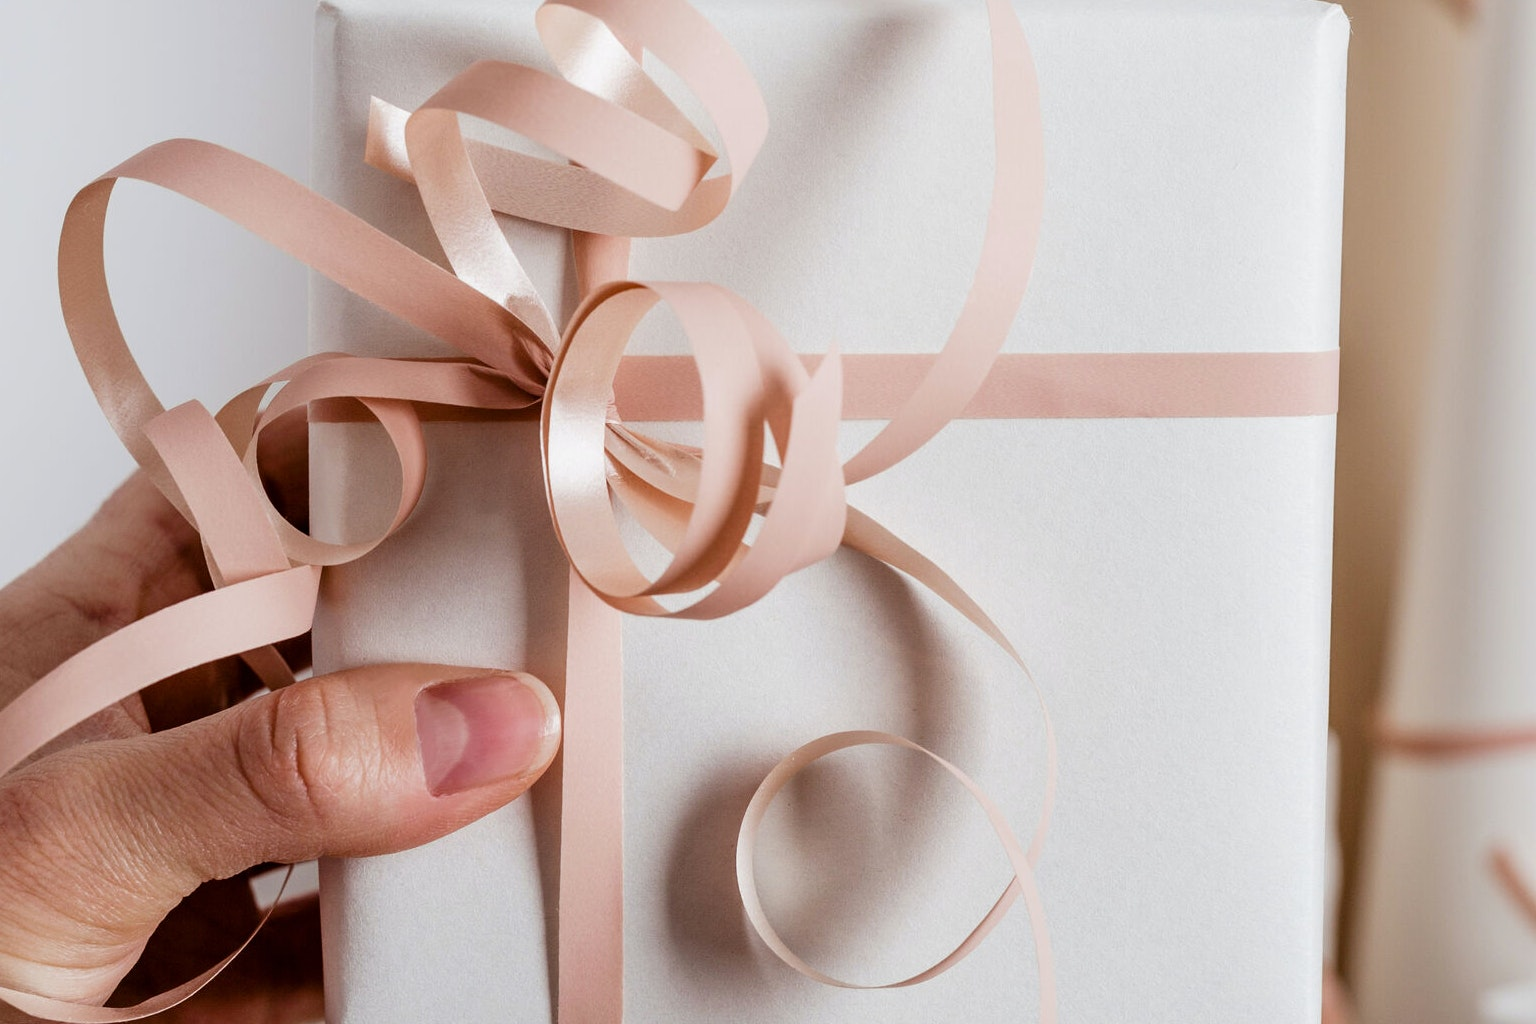 Dermatologists Reveal the In-Office Treatments That Are Worthy of Gifting to Their Friends